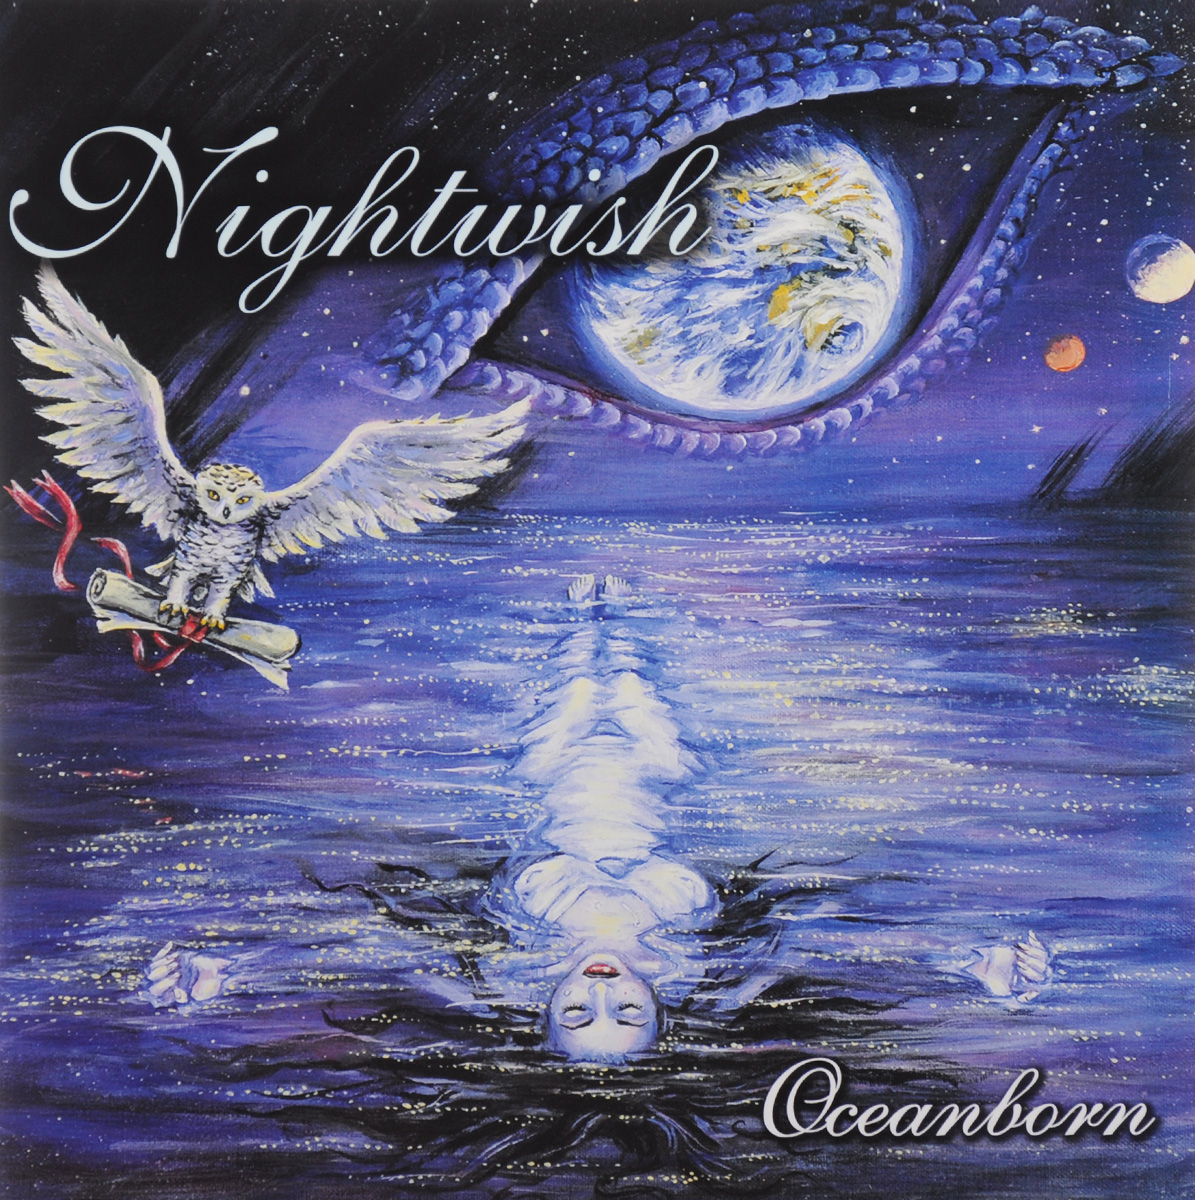 Nightwish Nightwish. Oceanborn (2 LP) nightwish manchester